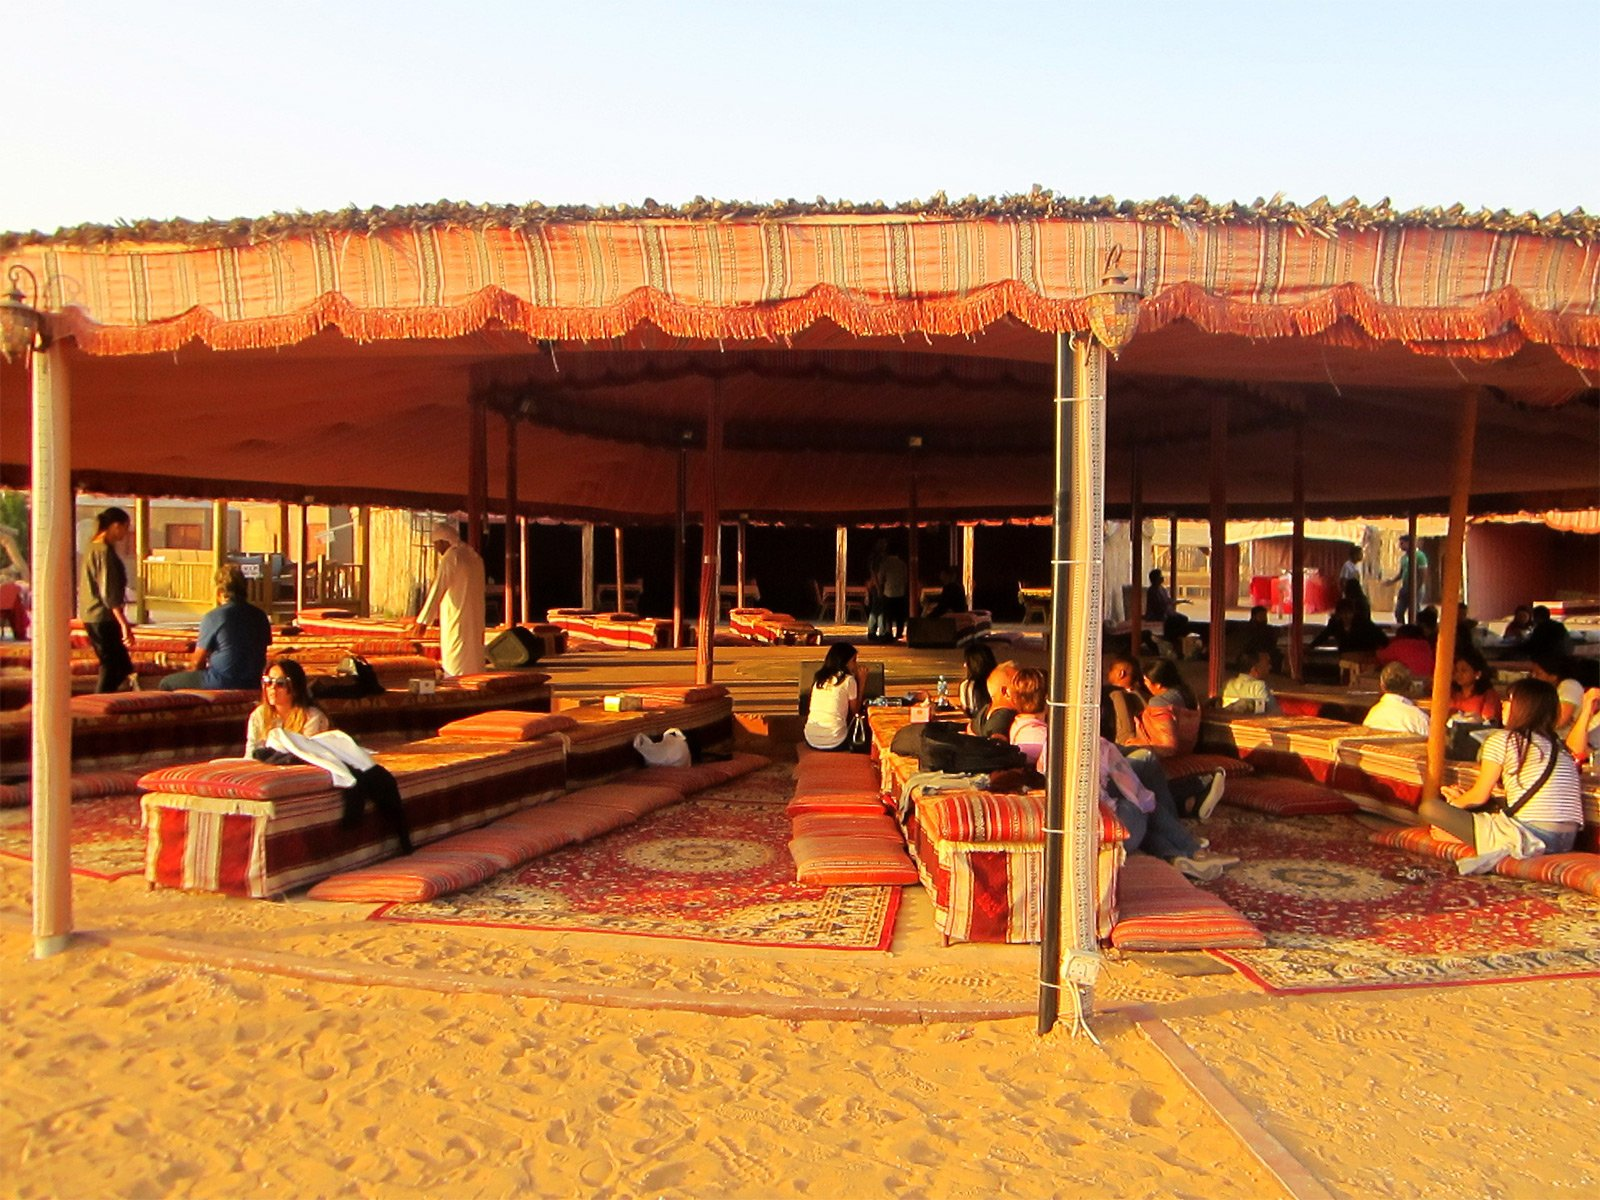 How to visit Bedouin Village in Dubai